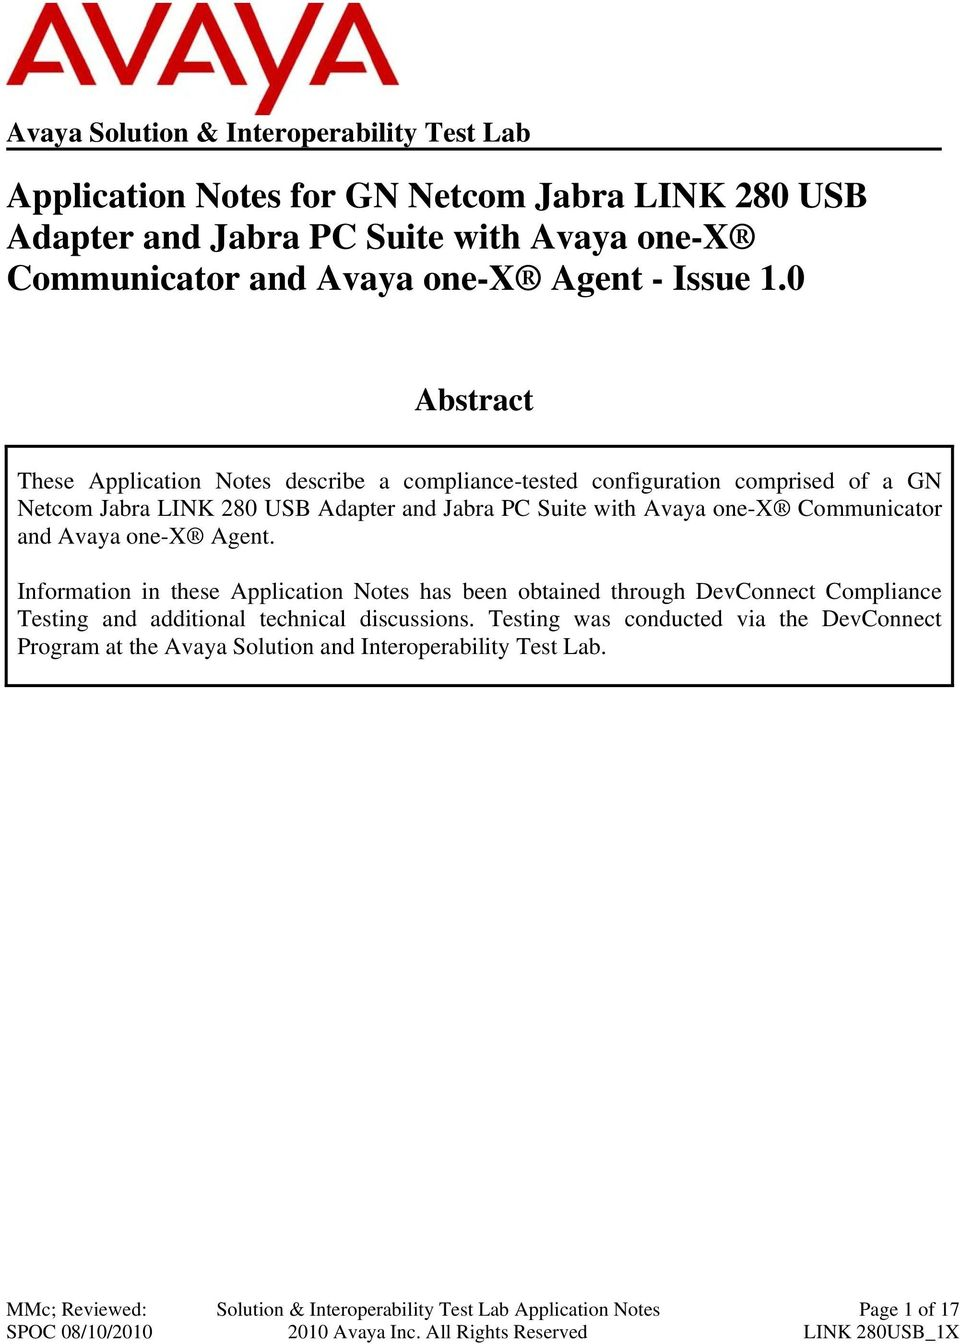 0 Abstract These Application Notes describe a compliance-tested configuration comprised of a GN Netcom Jabra LINK 280 USB Adapter and Jabra PC Suite with Avaya one-x